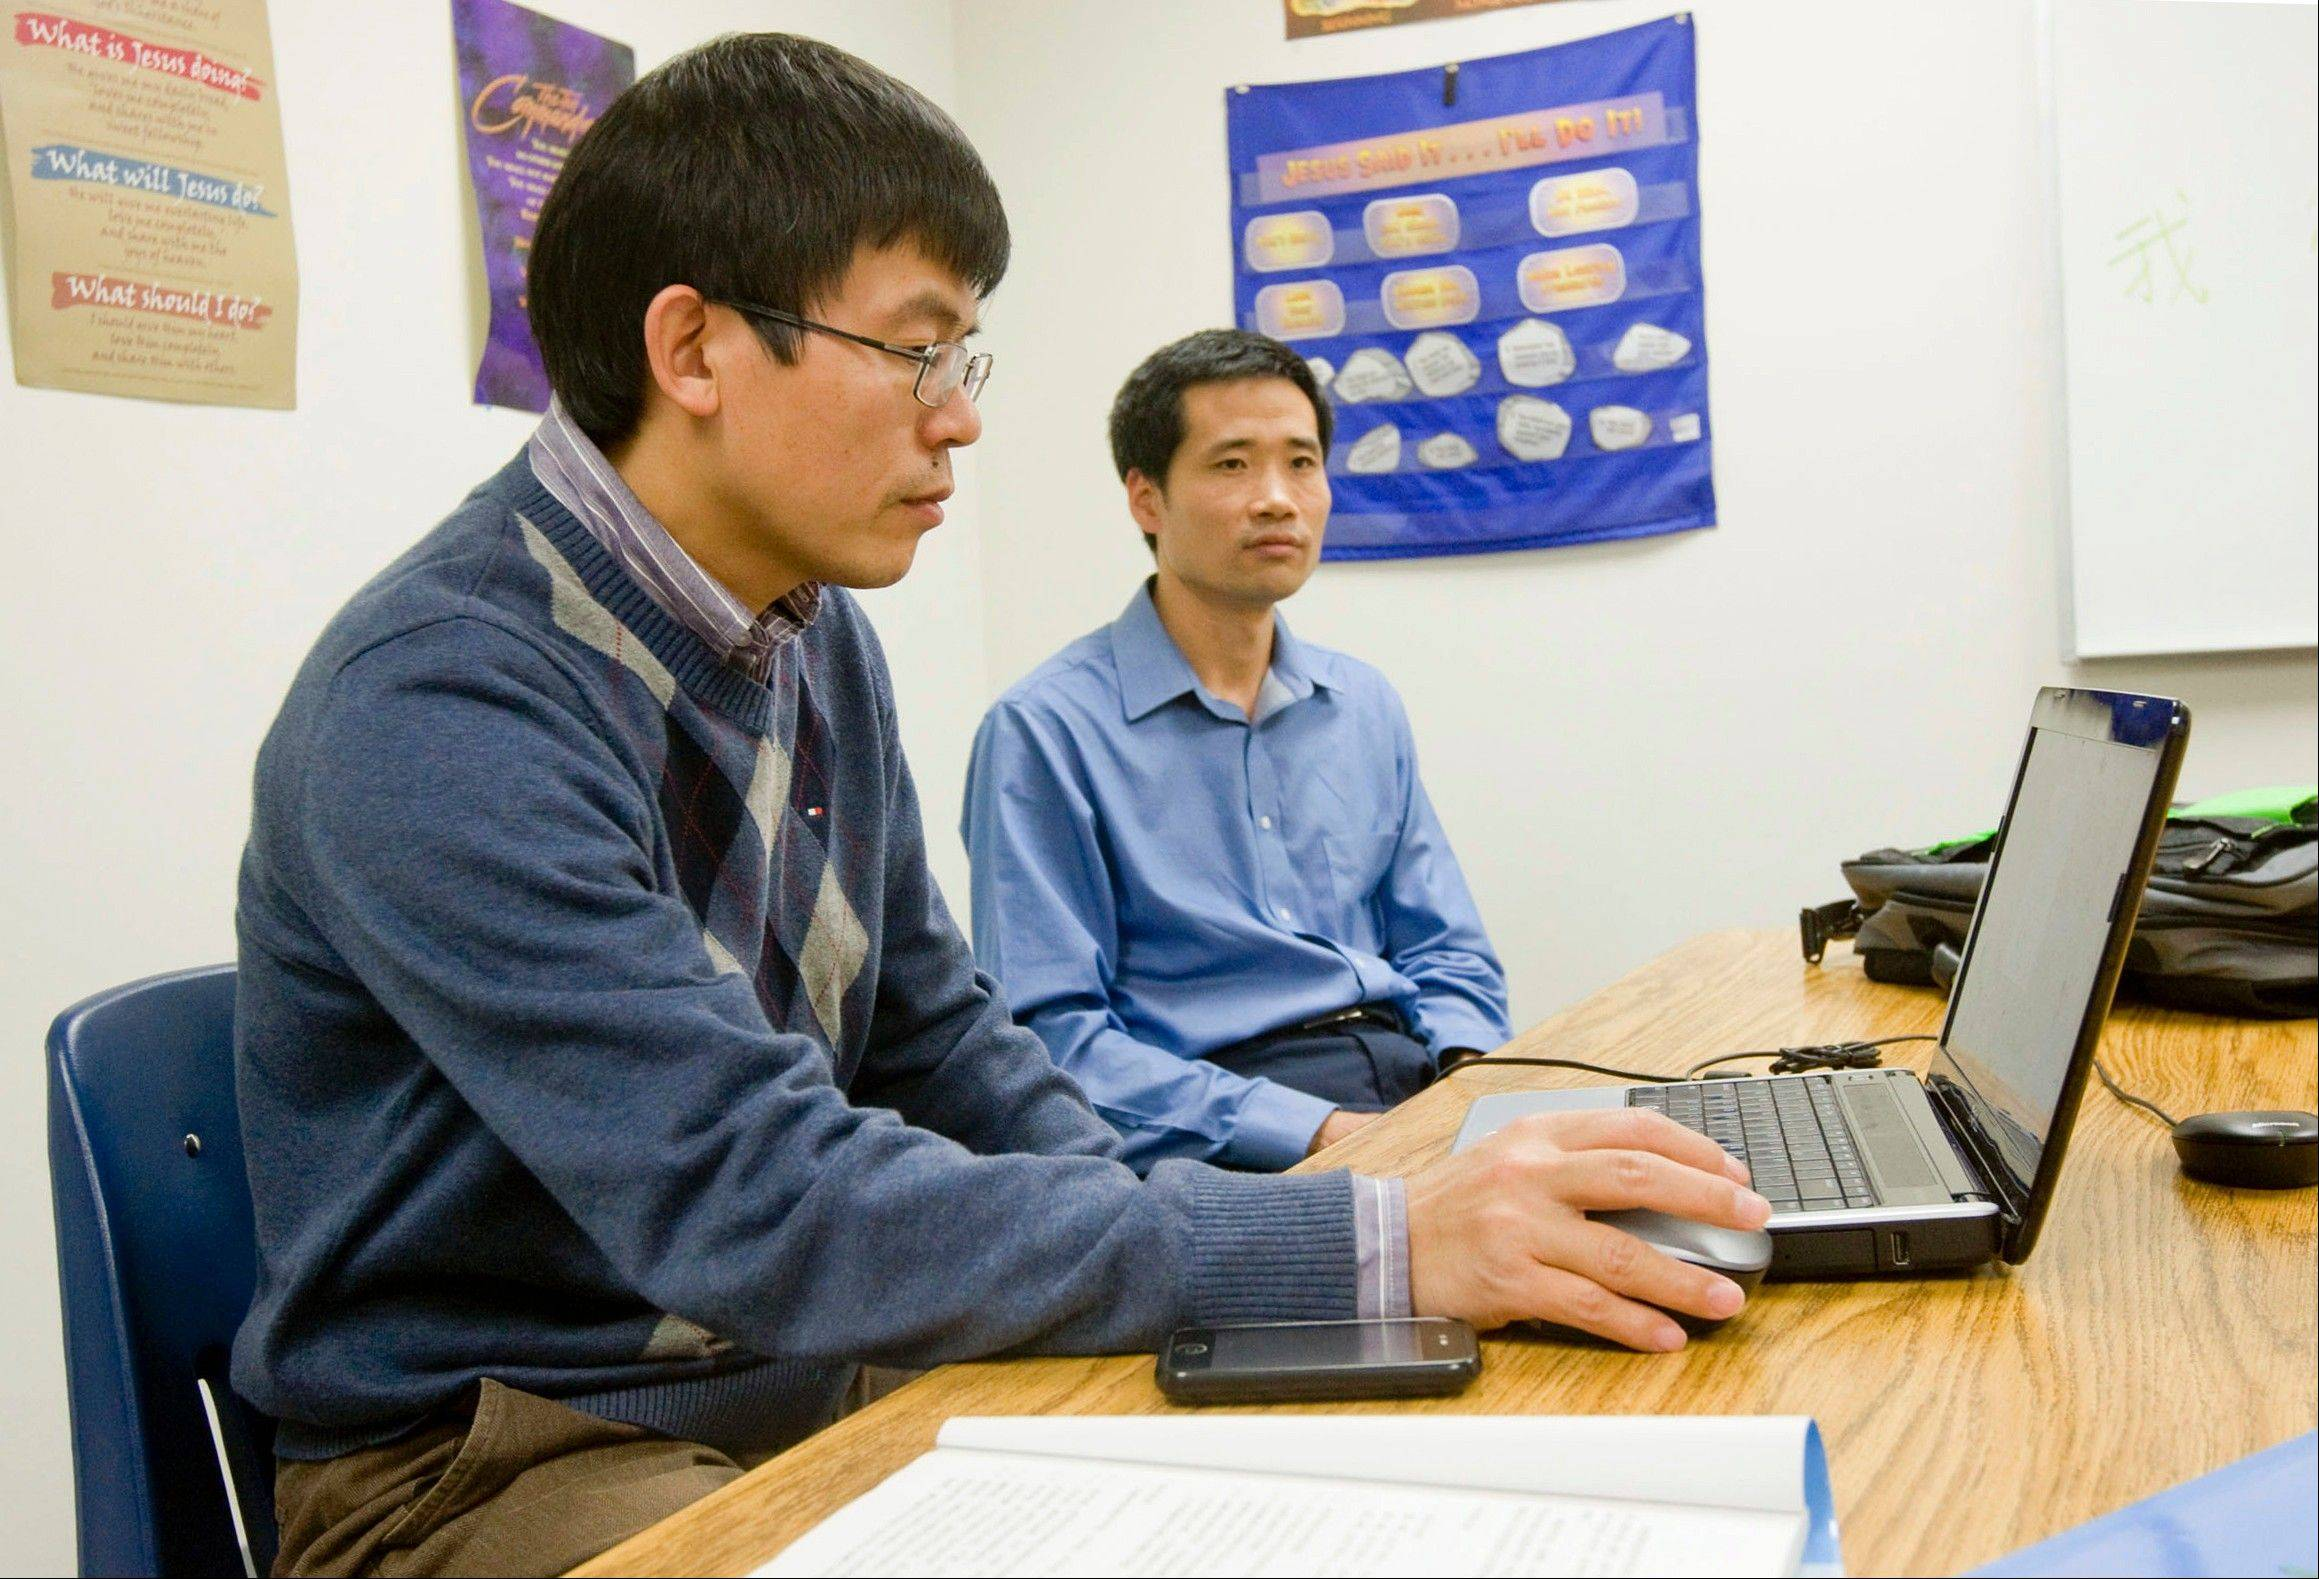 Chinese language instructor Victor Mao, left, works on his laptop as Chris Ma looks on. The two men are involved in a Chinese language class taught over a 10-week period at Moundford Free Methodist Church in Decatur.